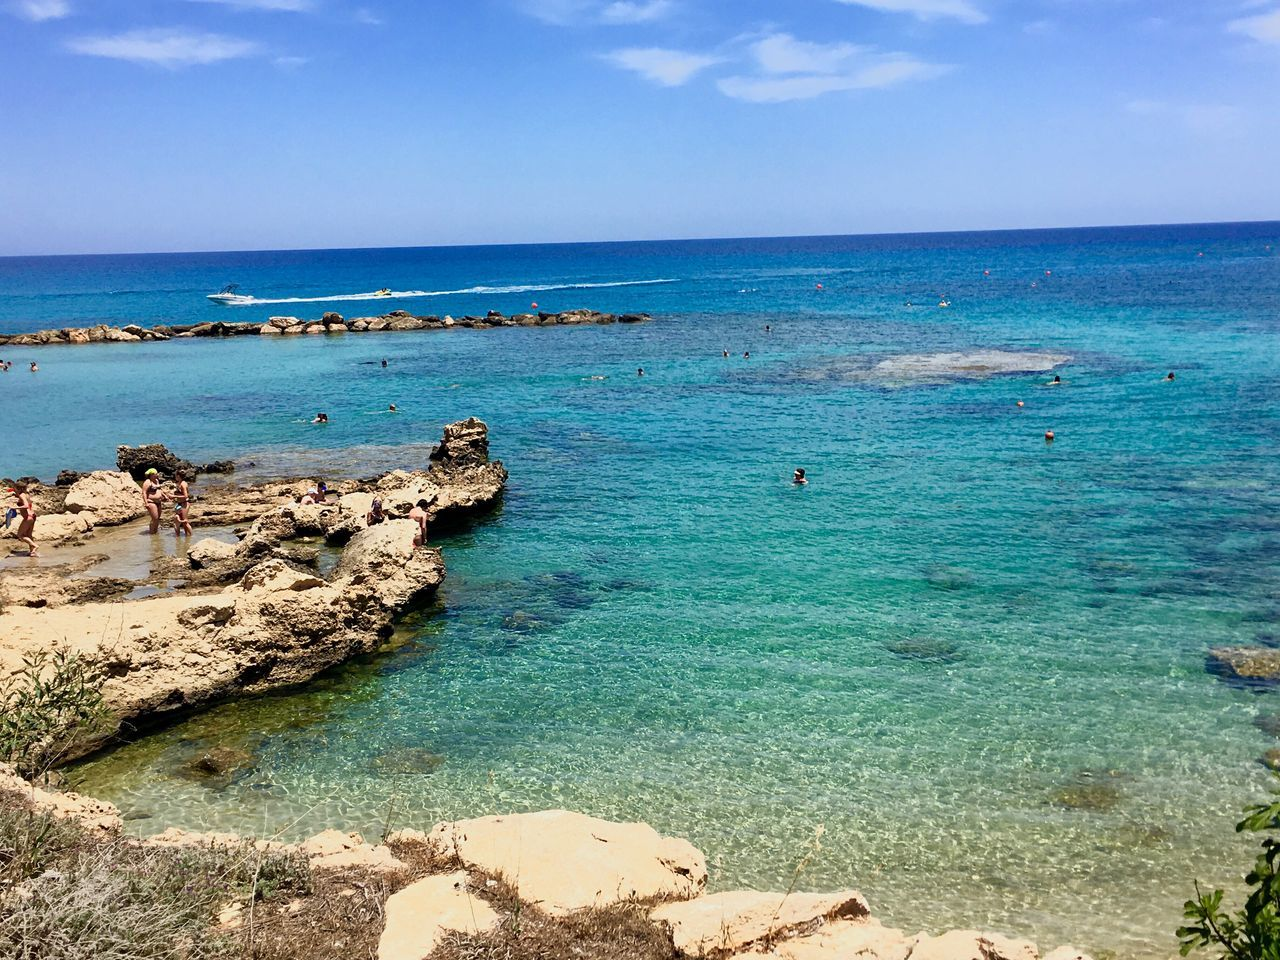 Cyprus Protaras Summer 2016 Bay Greenbay Clear Waters Hot Sandy Sunny Check This Out Hello World Relaxing Enjoying Life Taking Photos Feel The Journey Original Experiences Live For The Story The Great Outdoors - 2017 EyeEm Awards